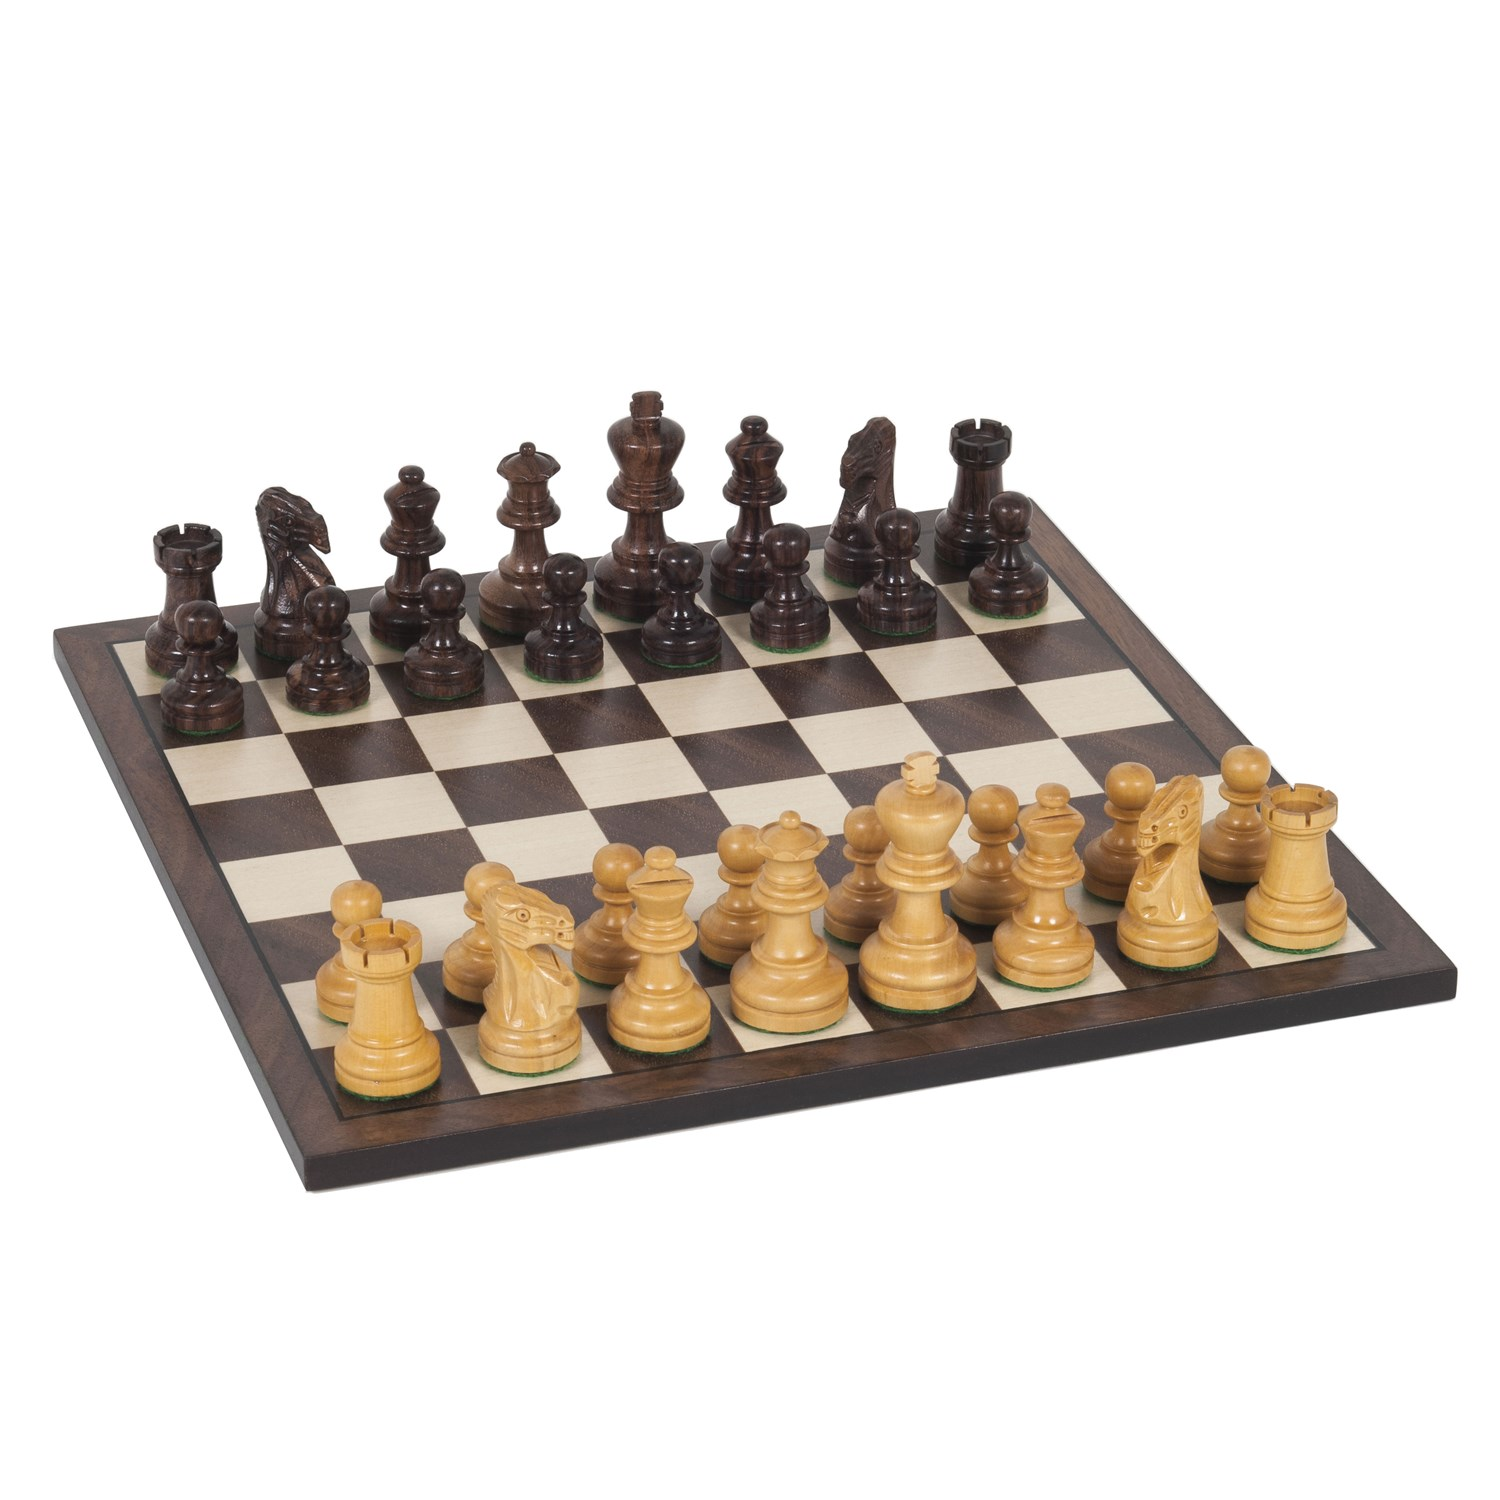 Staunton Chess Set - Weighted Rosewood Pieces and Wooden Board (12 Inches)